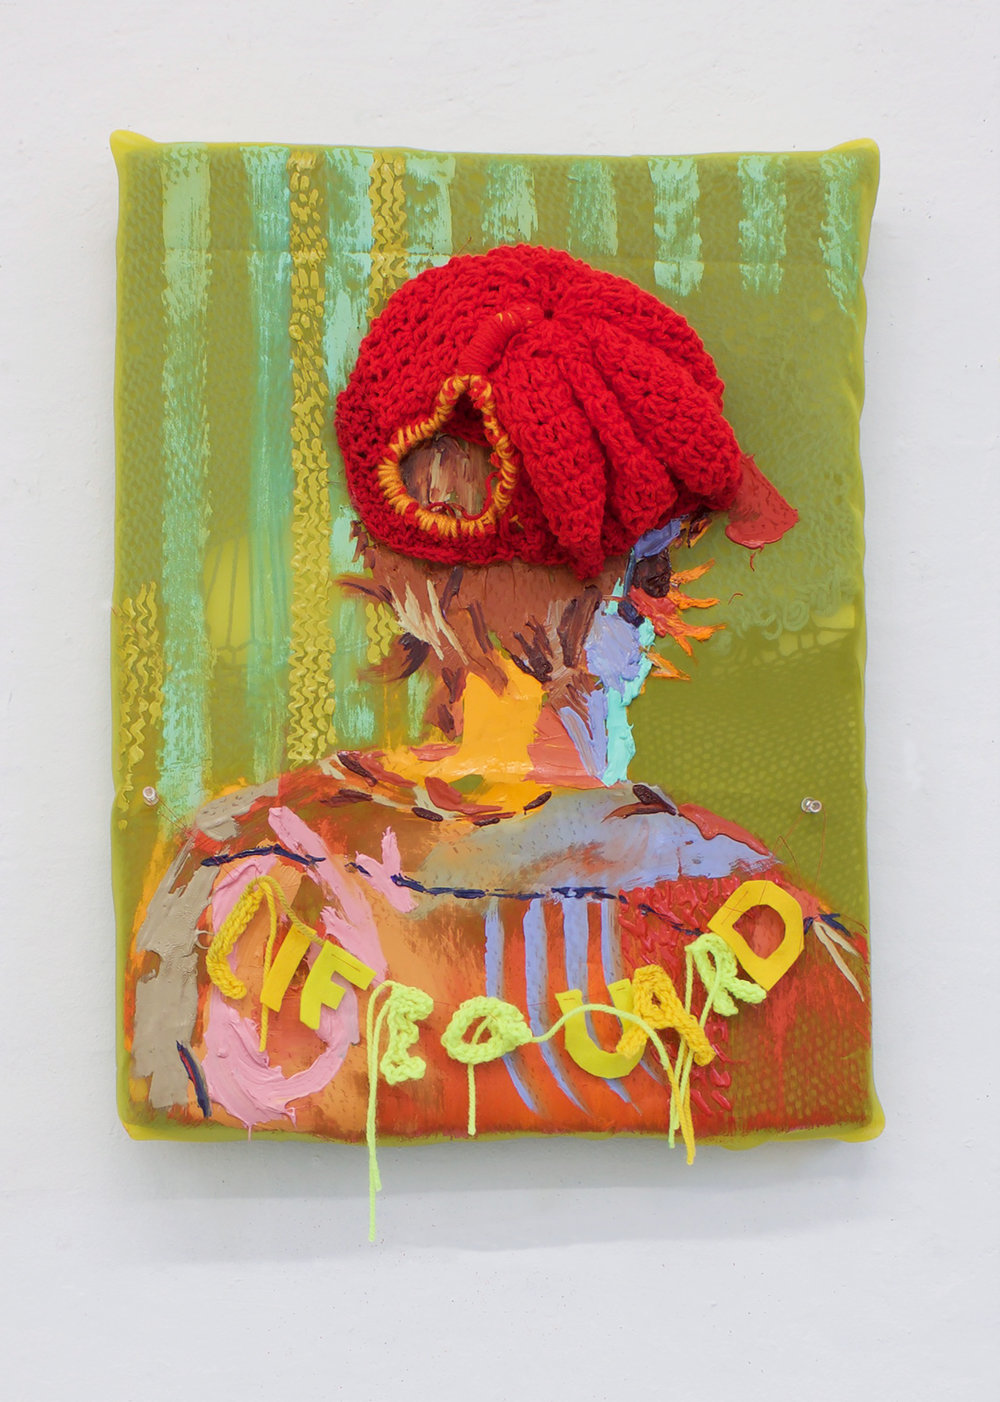 <b>No running, boisterous or rough play in the pool area</b><br>Oil on fabric and knit wrapped upholstery foam, yarn, string, push pins<br>22 in x 17 in x 6 in